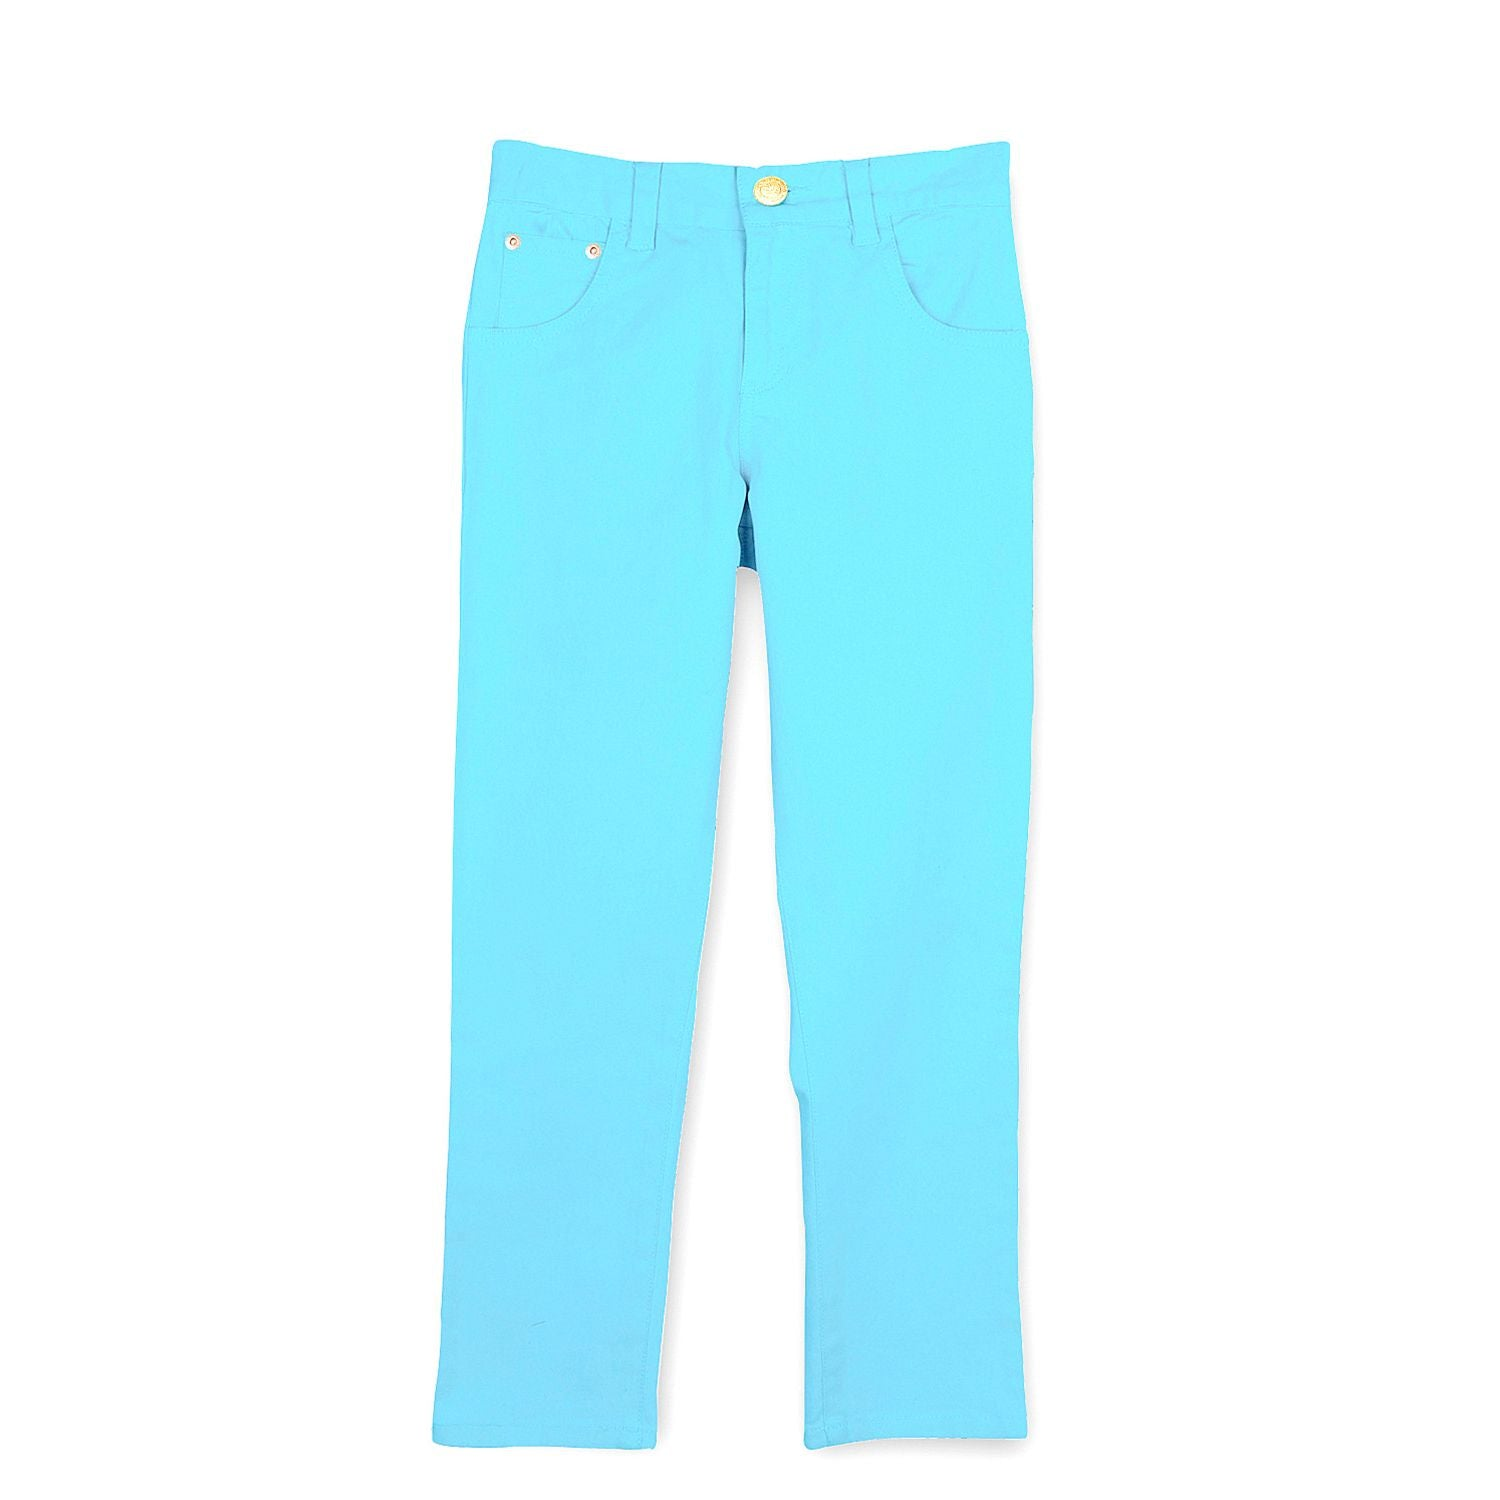 Cotton Twill Sky Blue Jeans for Boys